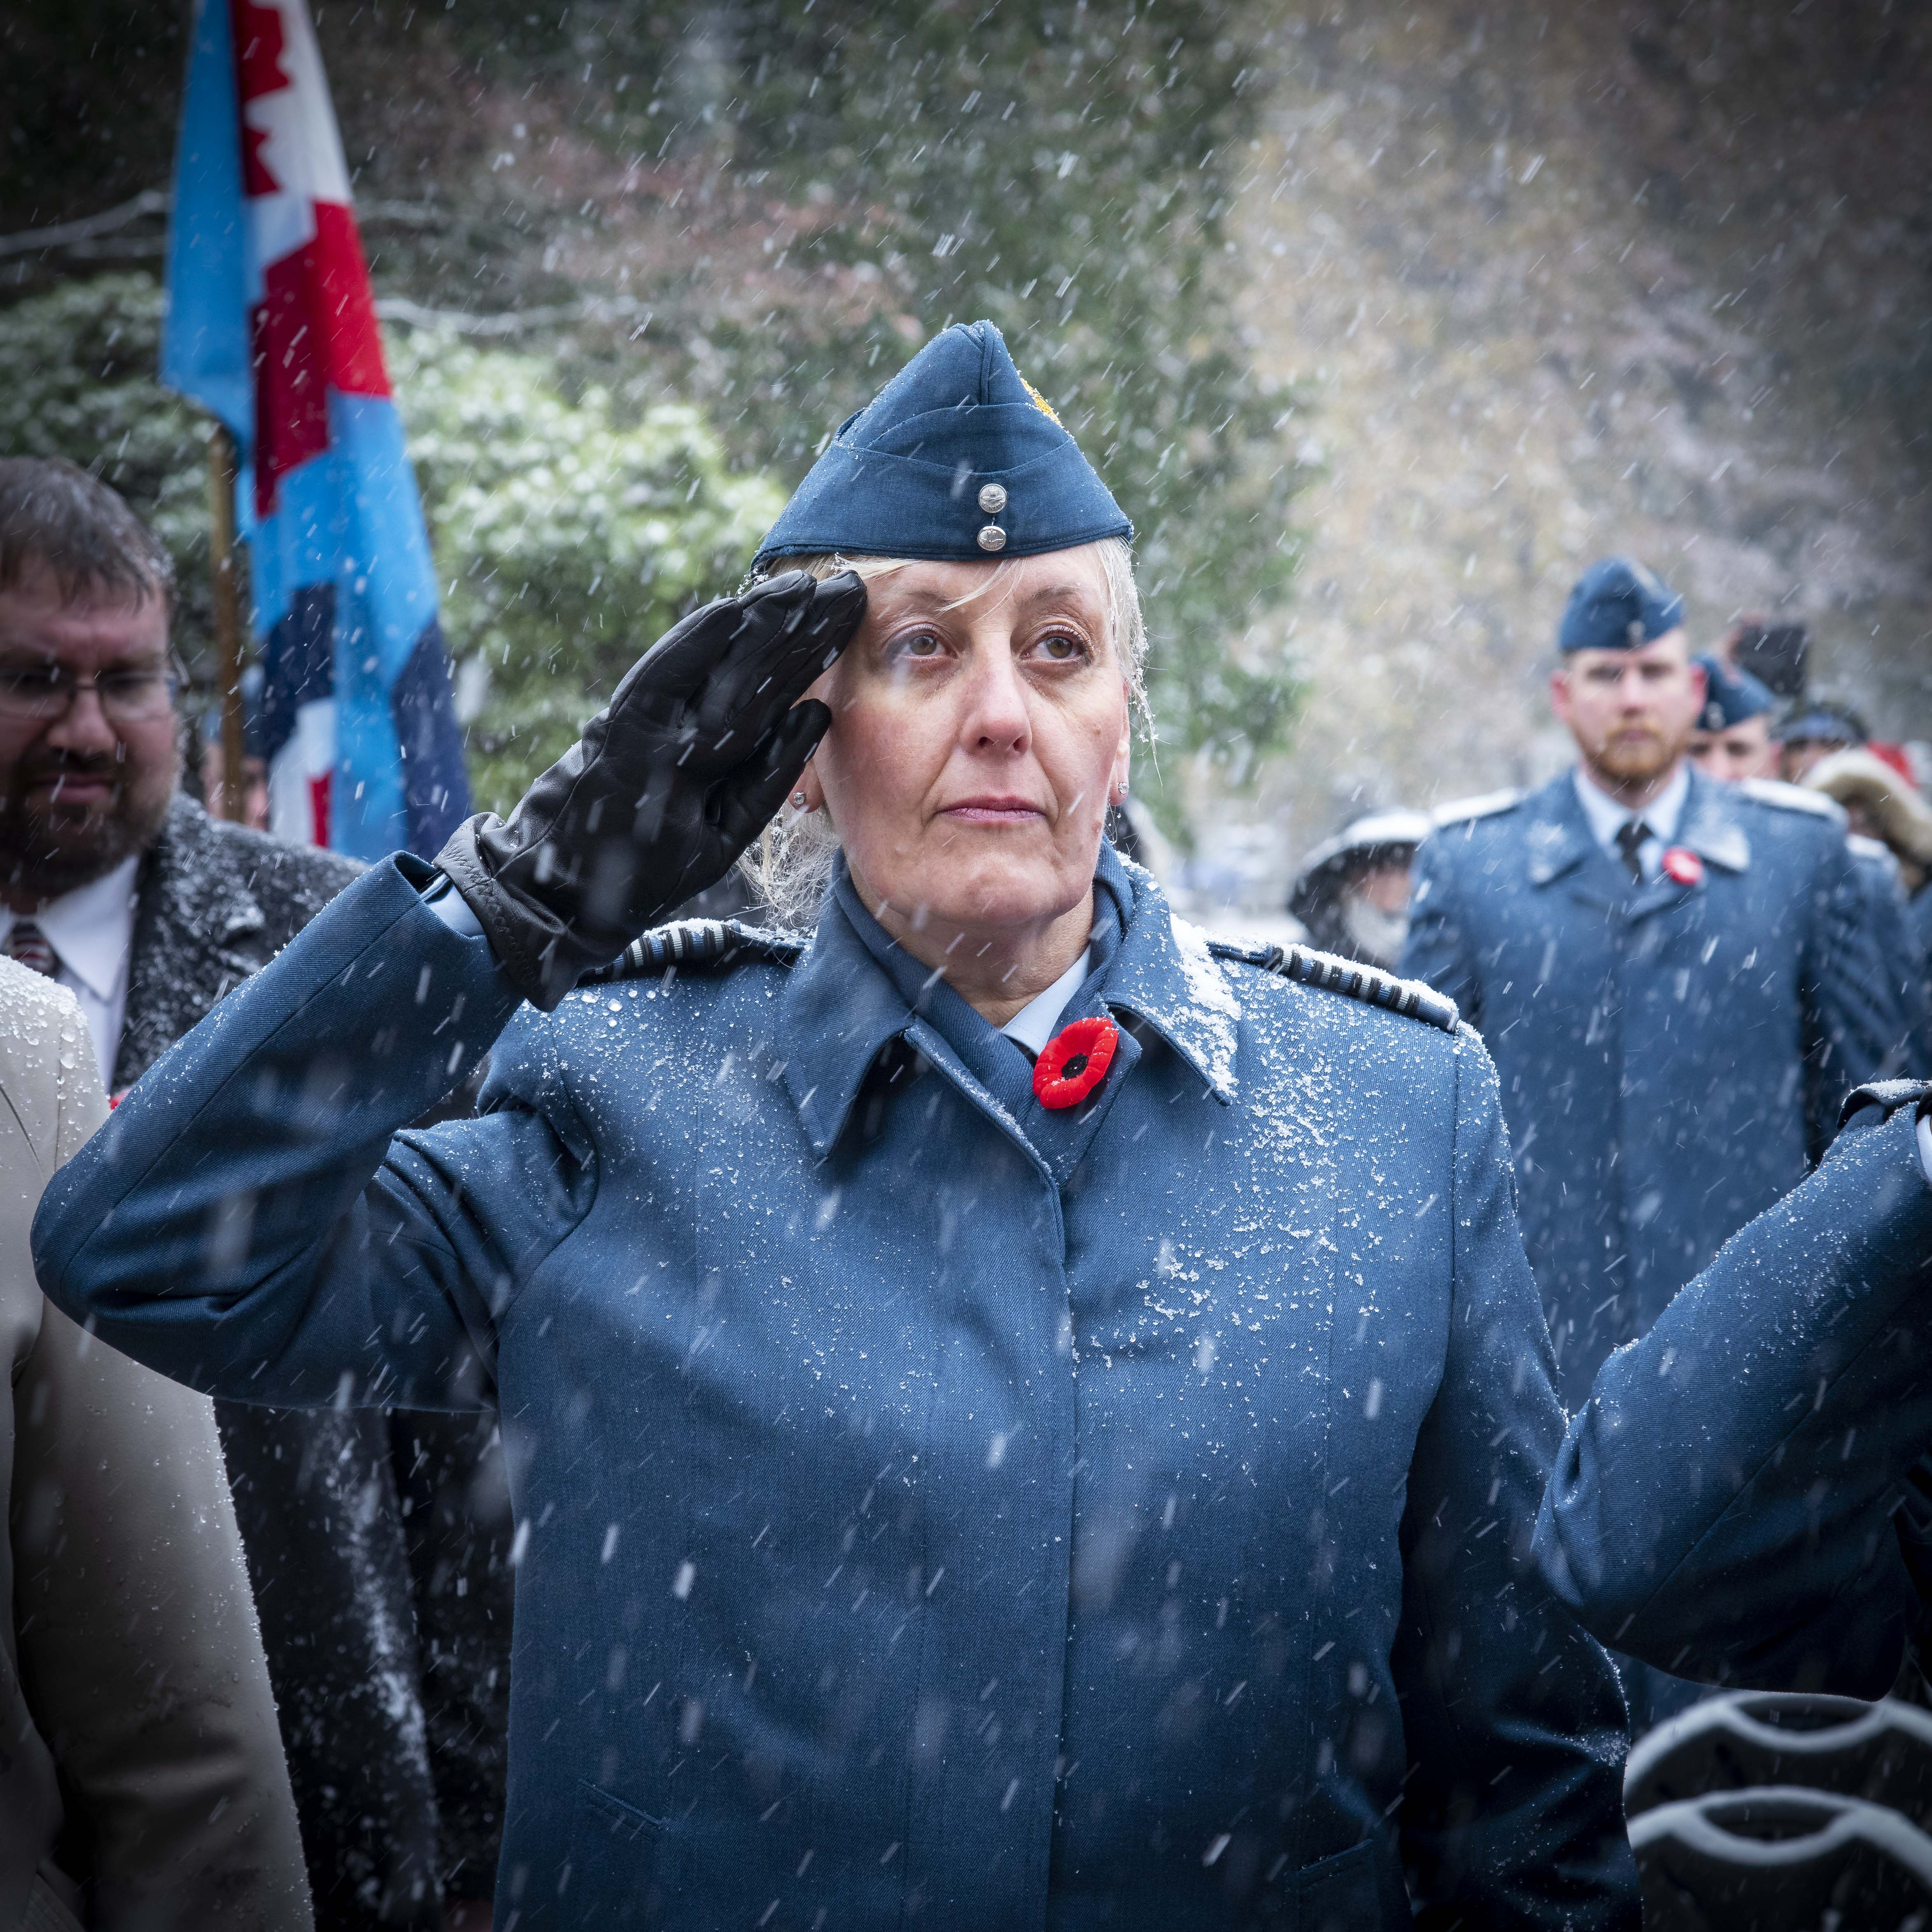 16 Wing's Honorary Colonel Renee van Kessel salutes during the 2019 Remembrance Day ceremony held at the mausoleum where Wing Commander William Barker, VC, is interred in Mount Pleasant Cemetery, Toronto. PHOTO: Corporal Lynette Ai Dang, BM10-2019-0359-024